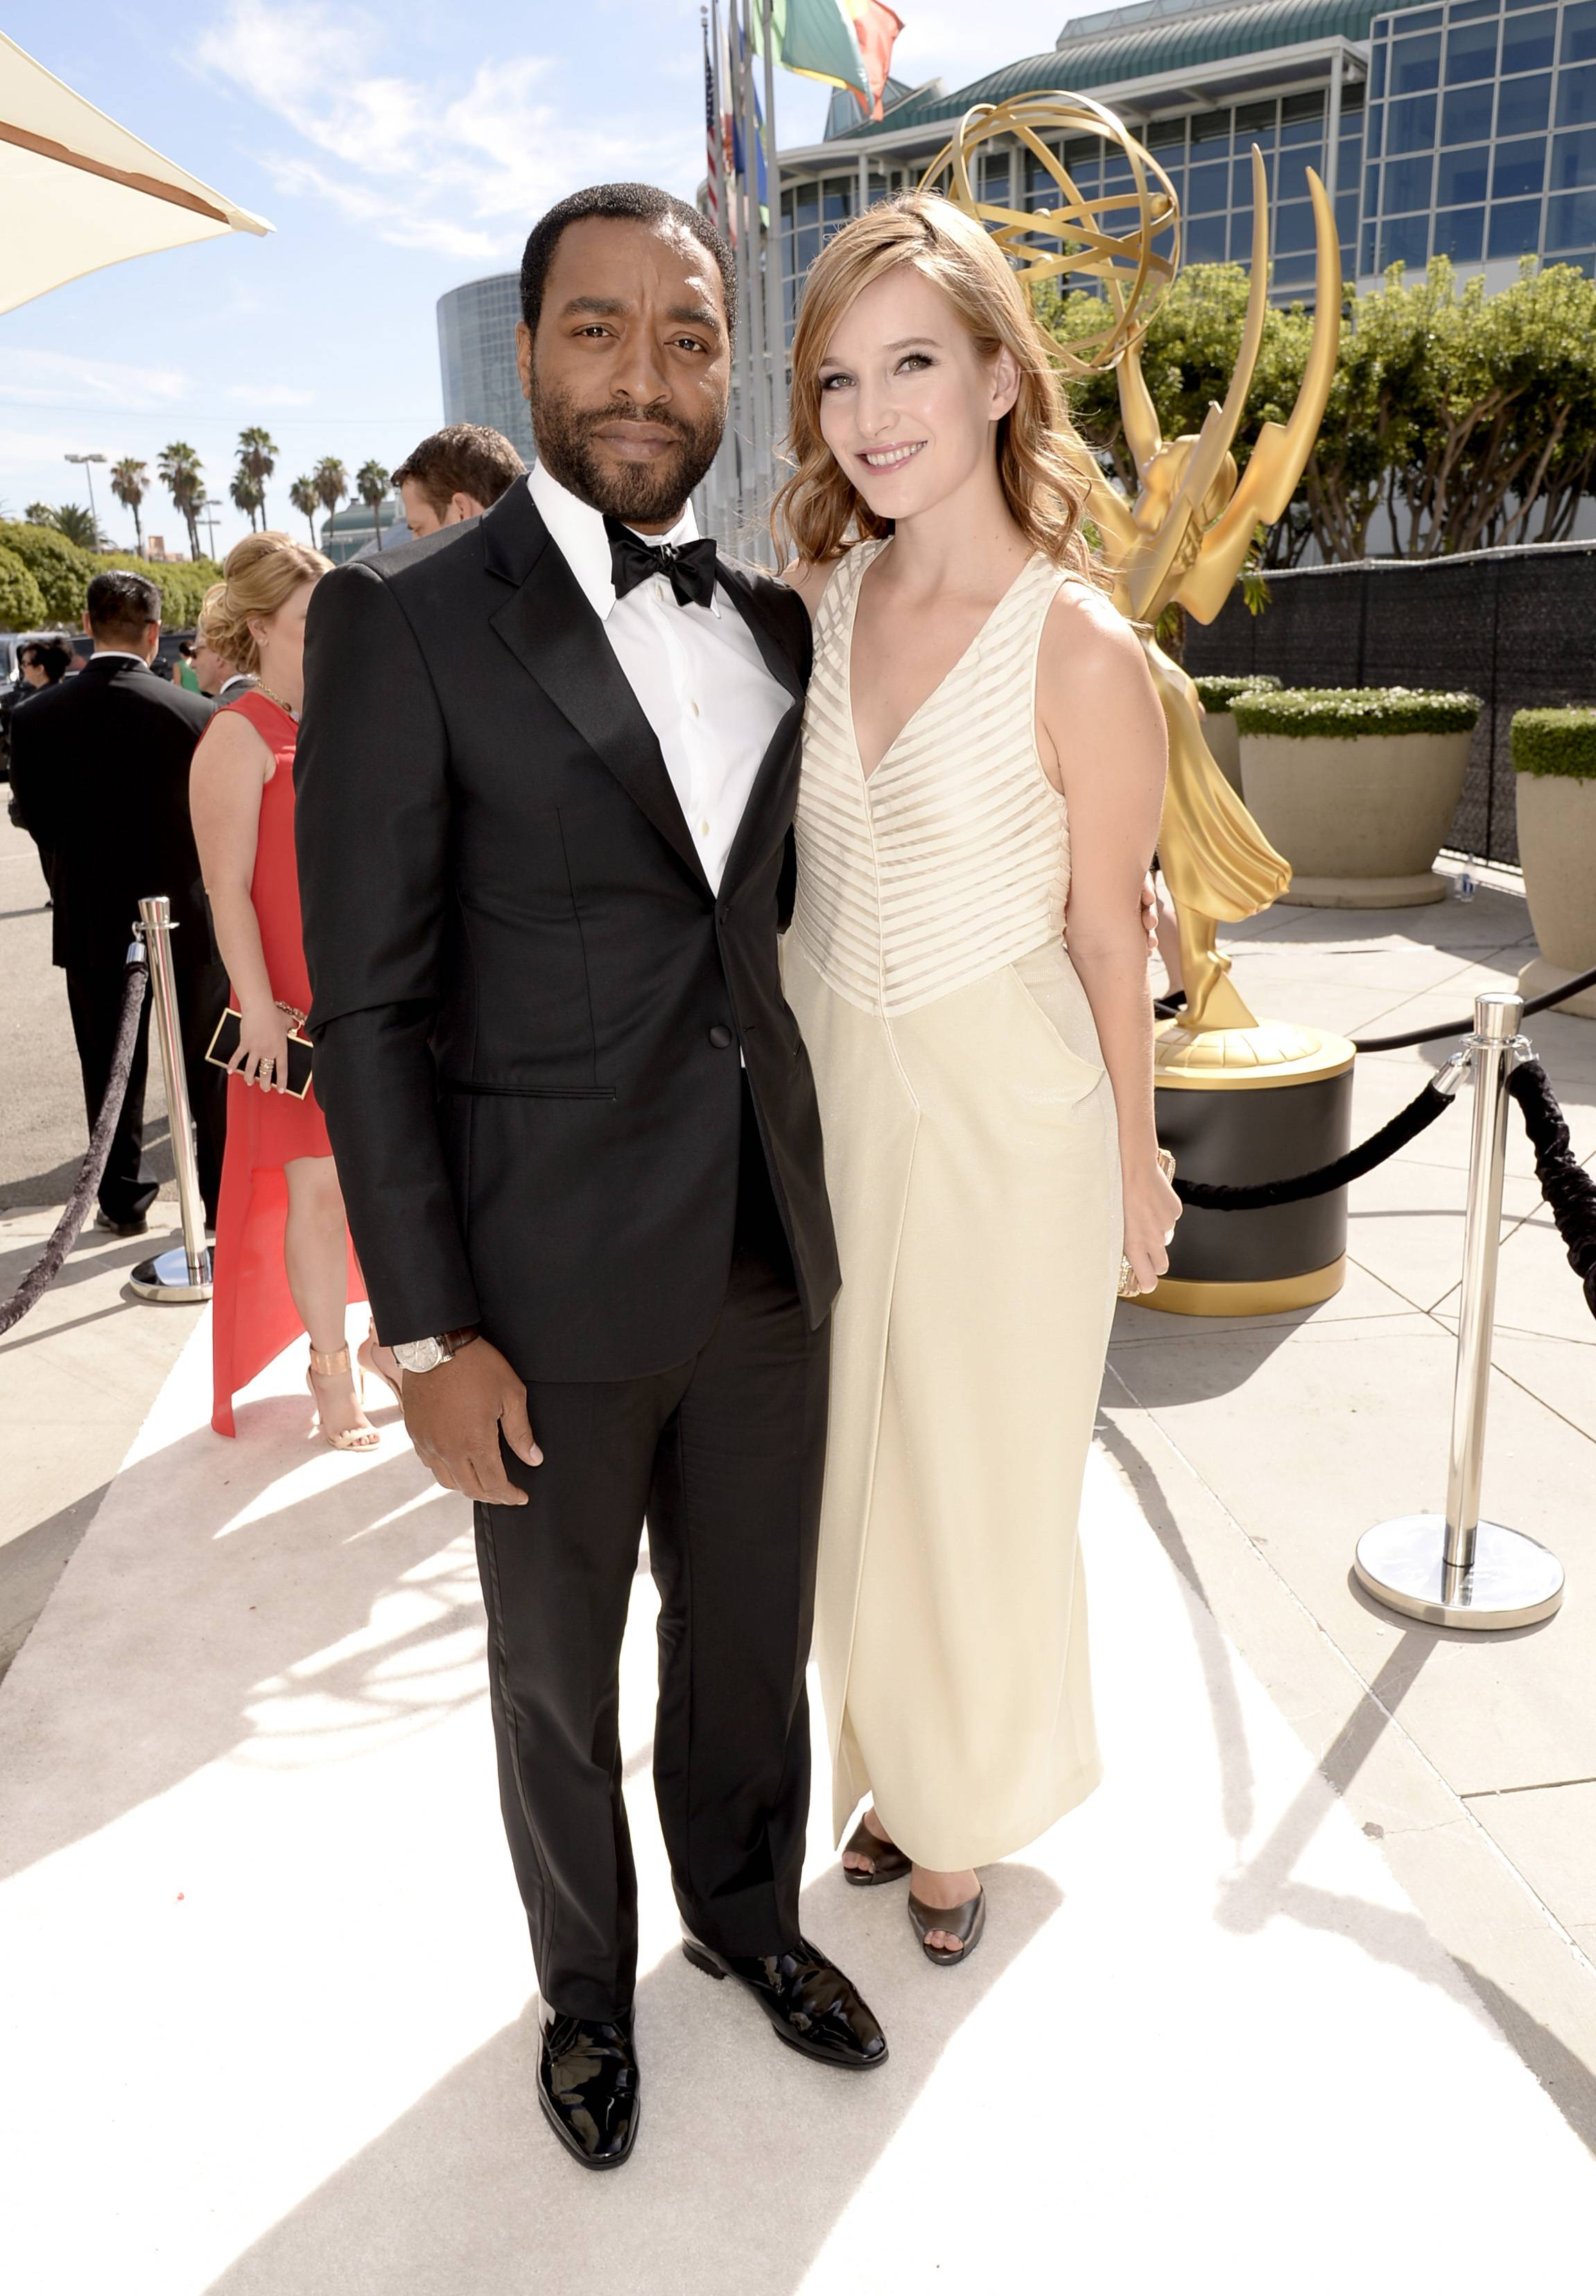 Chiwetel Ejiofor, left, and Sari Mercer arrive at the 66th Primetime Emmy Awards at the Nokia Theatre.